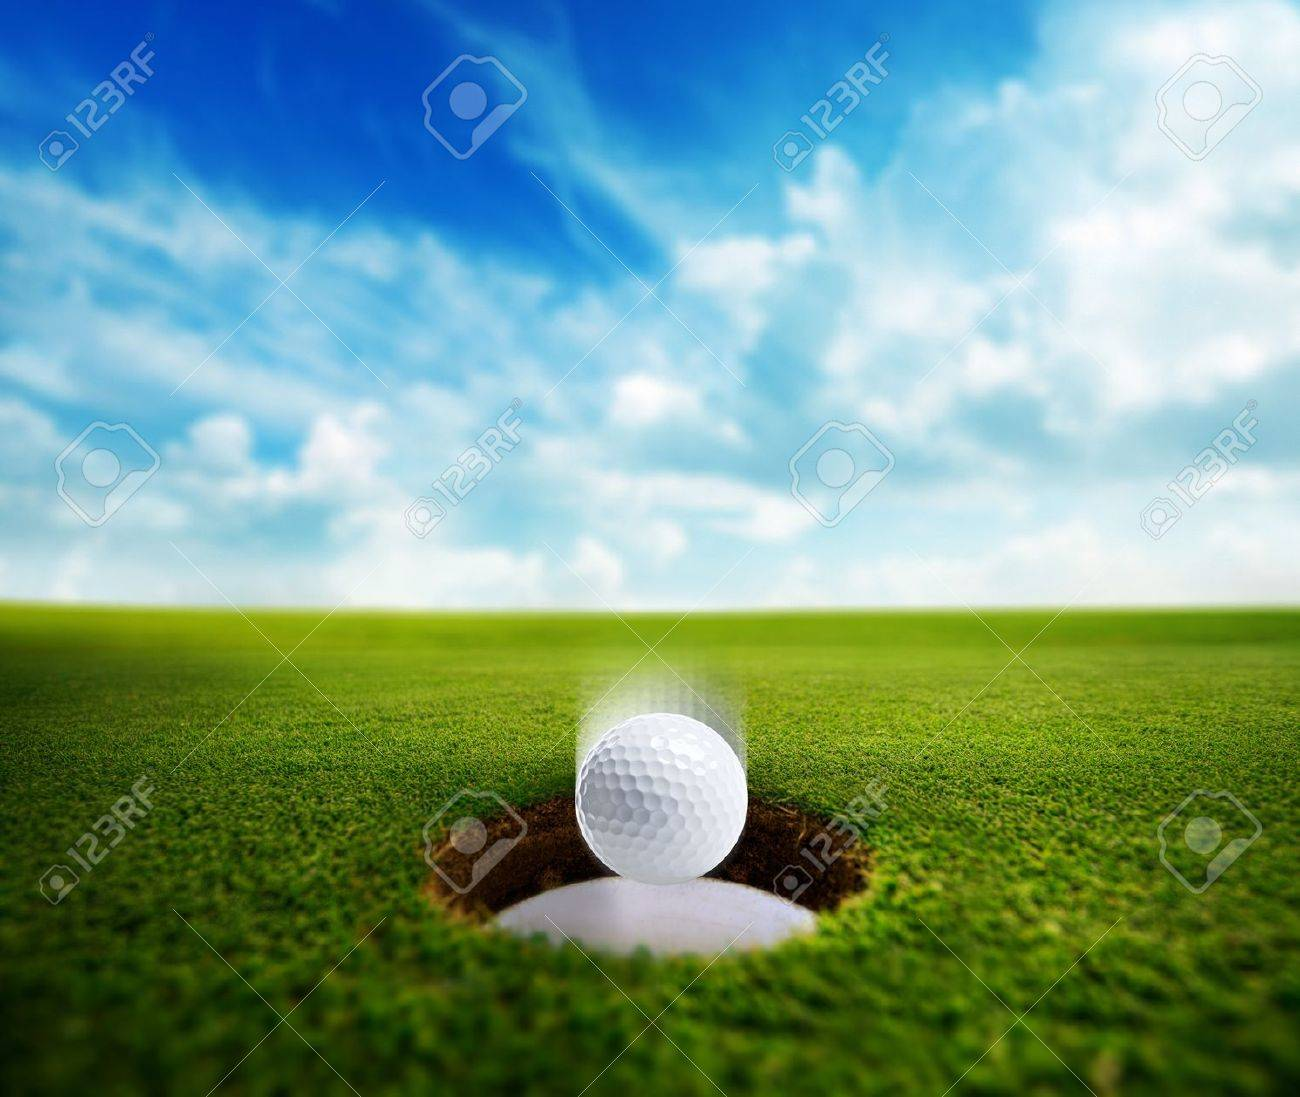 Golf ball falling into the cup on the green. Stock Photo - 20353991